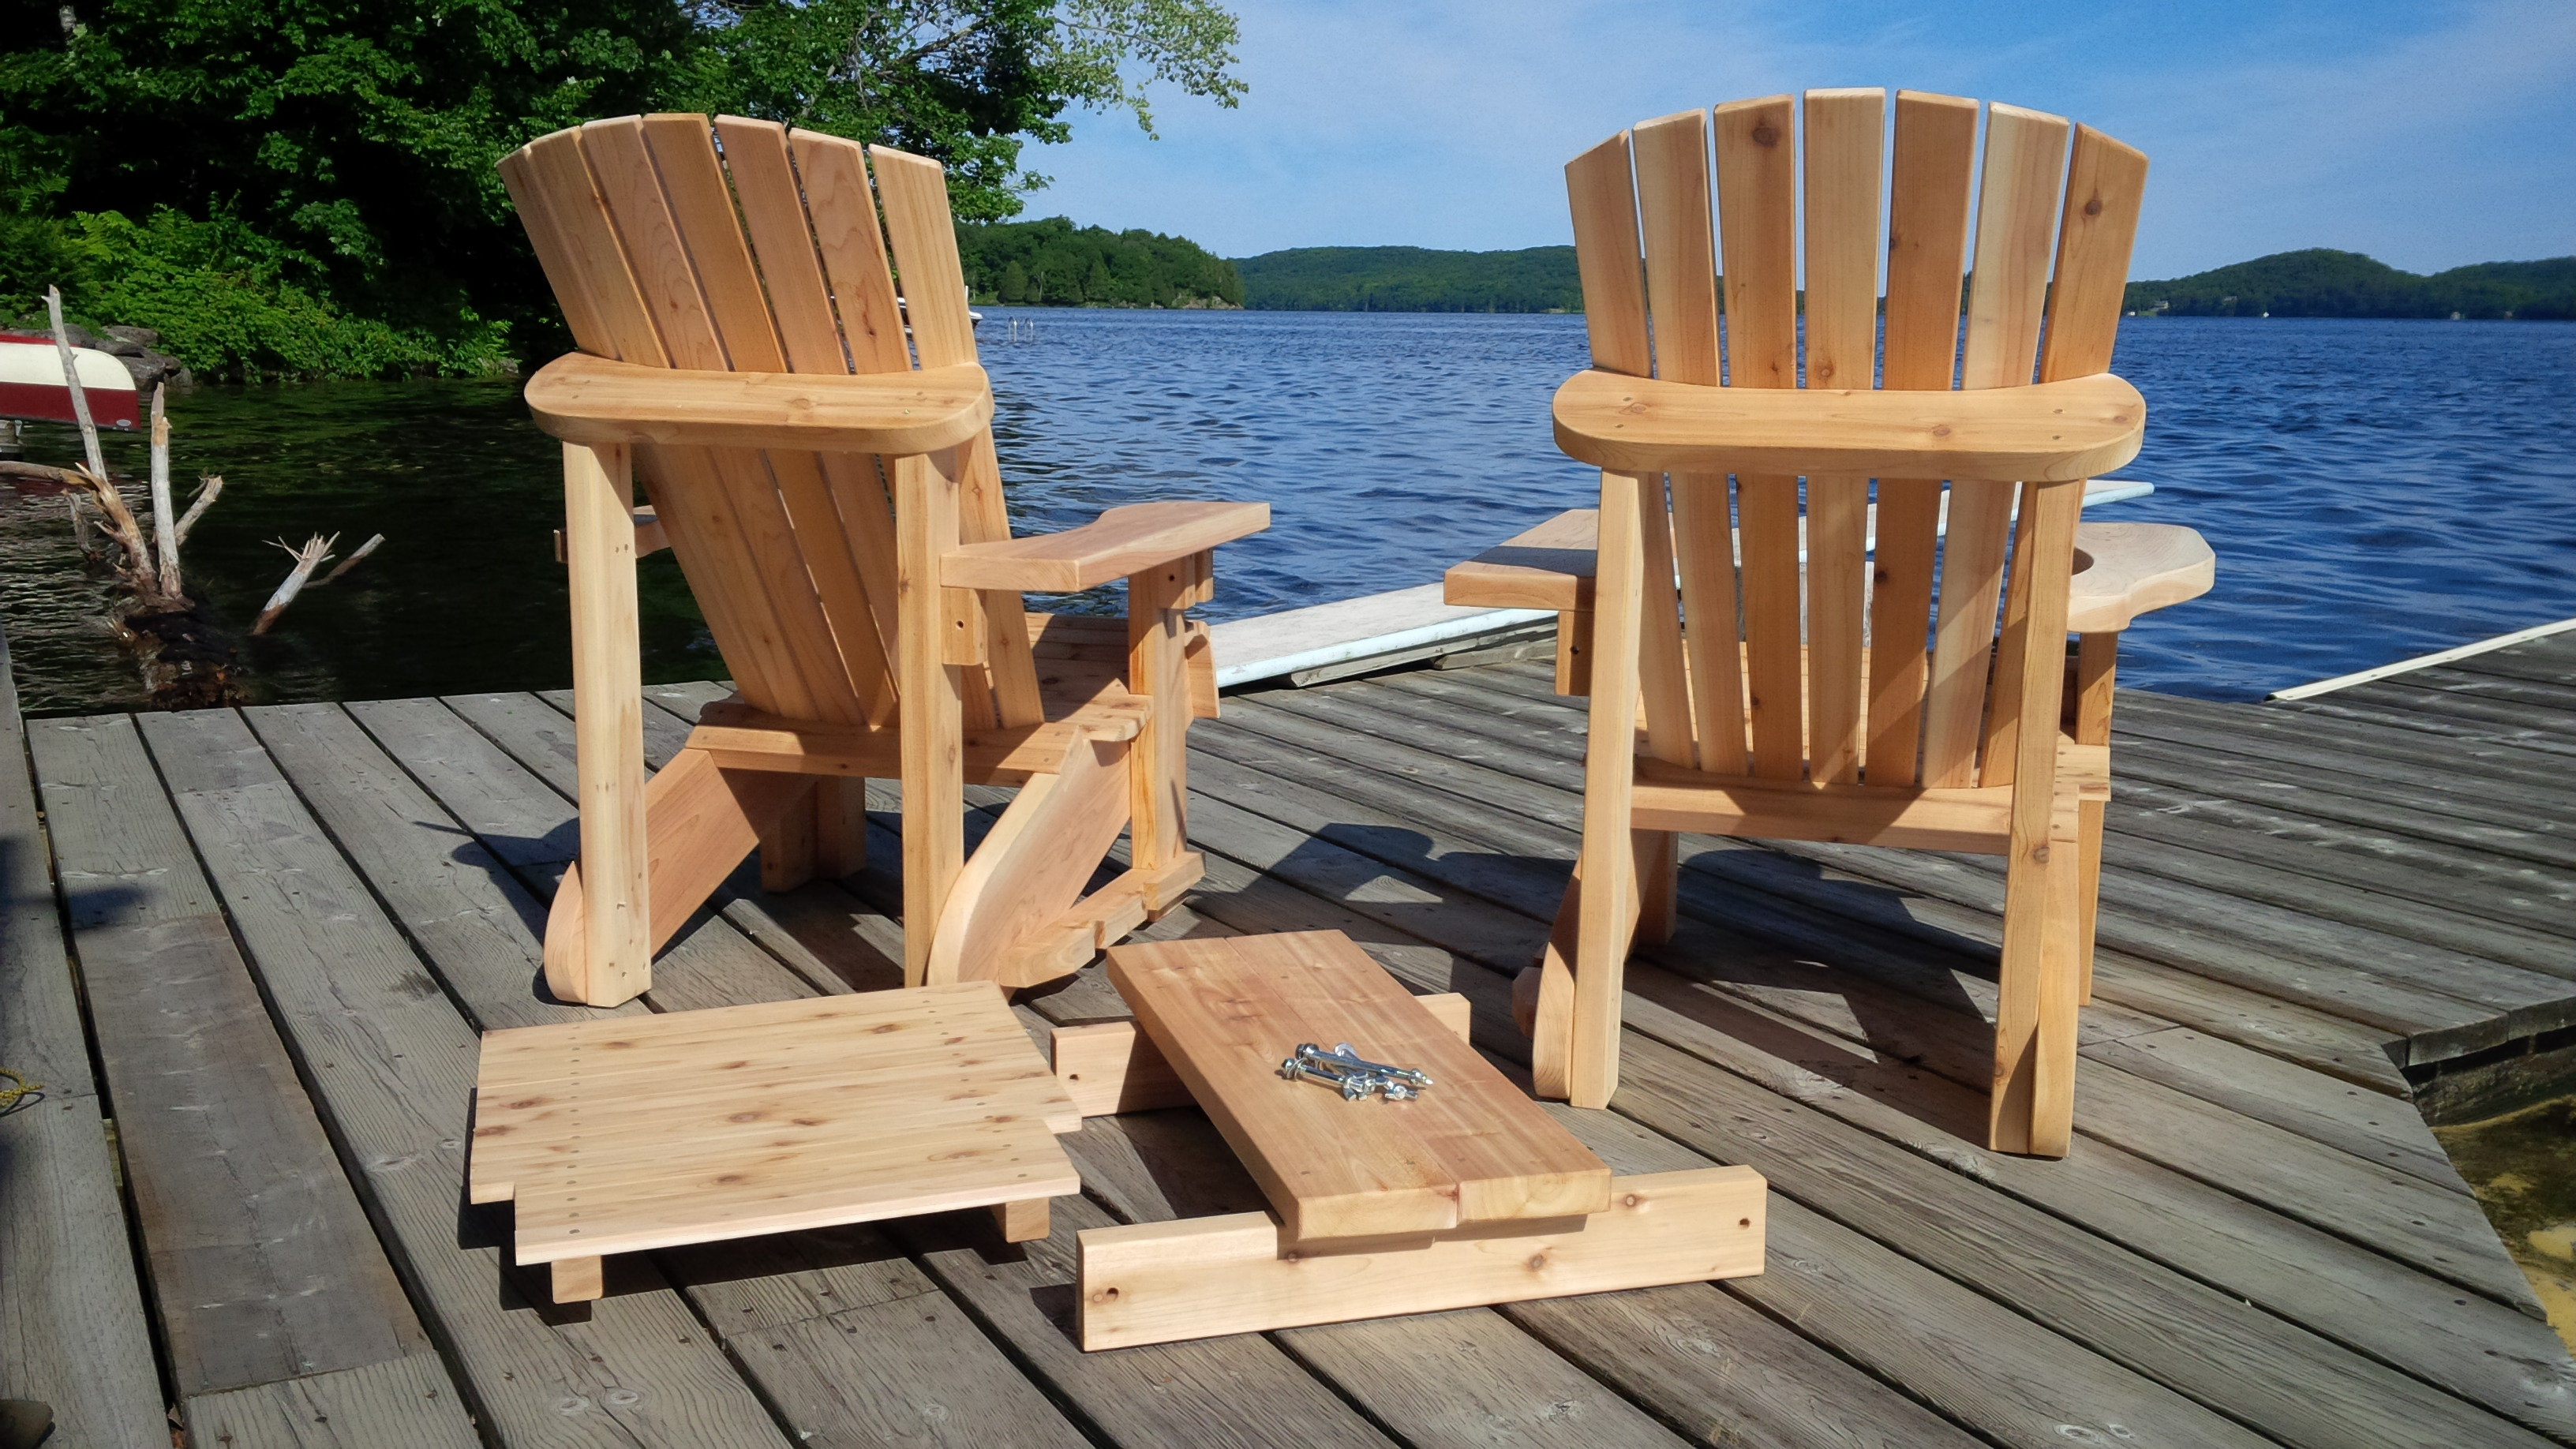 Parallel Muskoka Chair/Table Combo